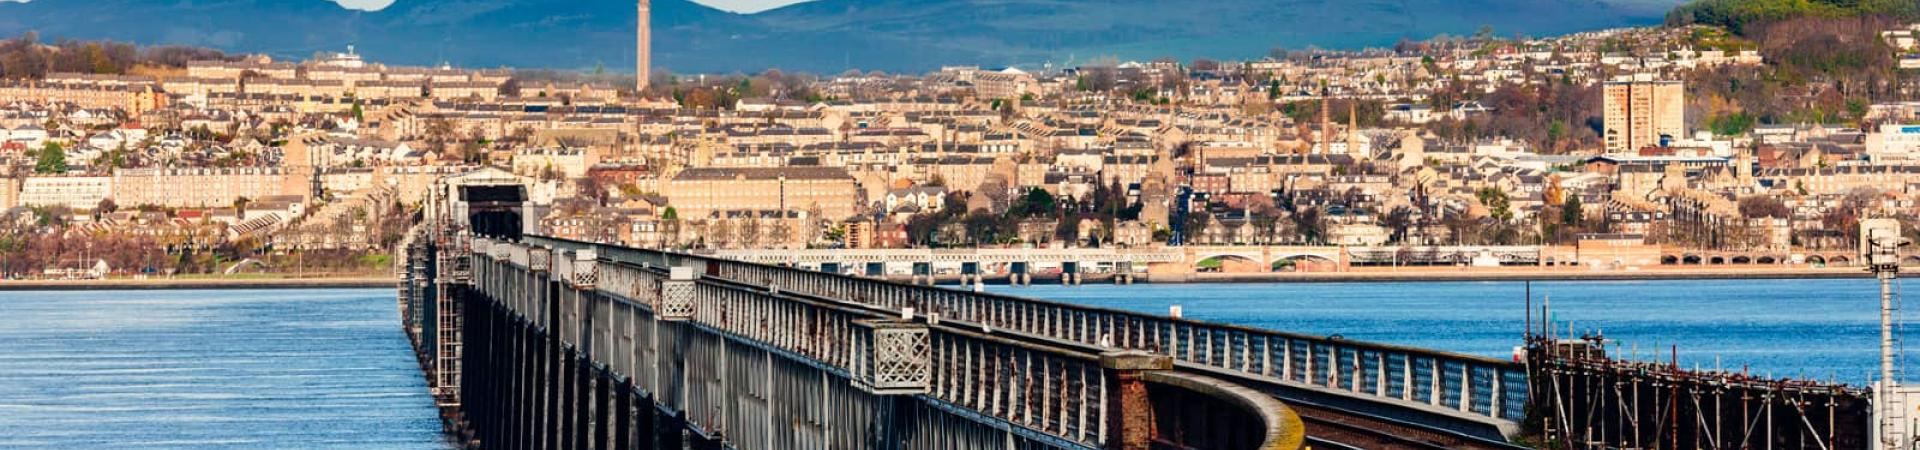 wide image of Dundee and the Tay railway Bridge